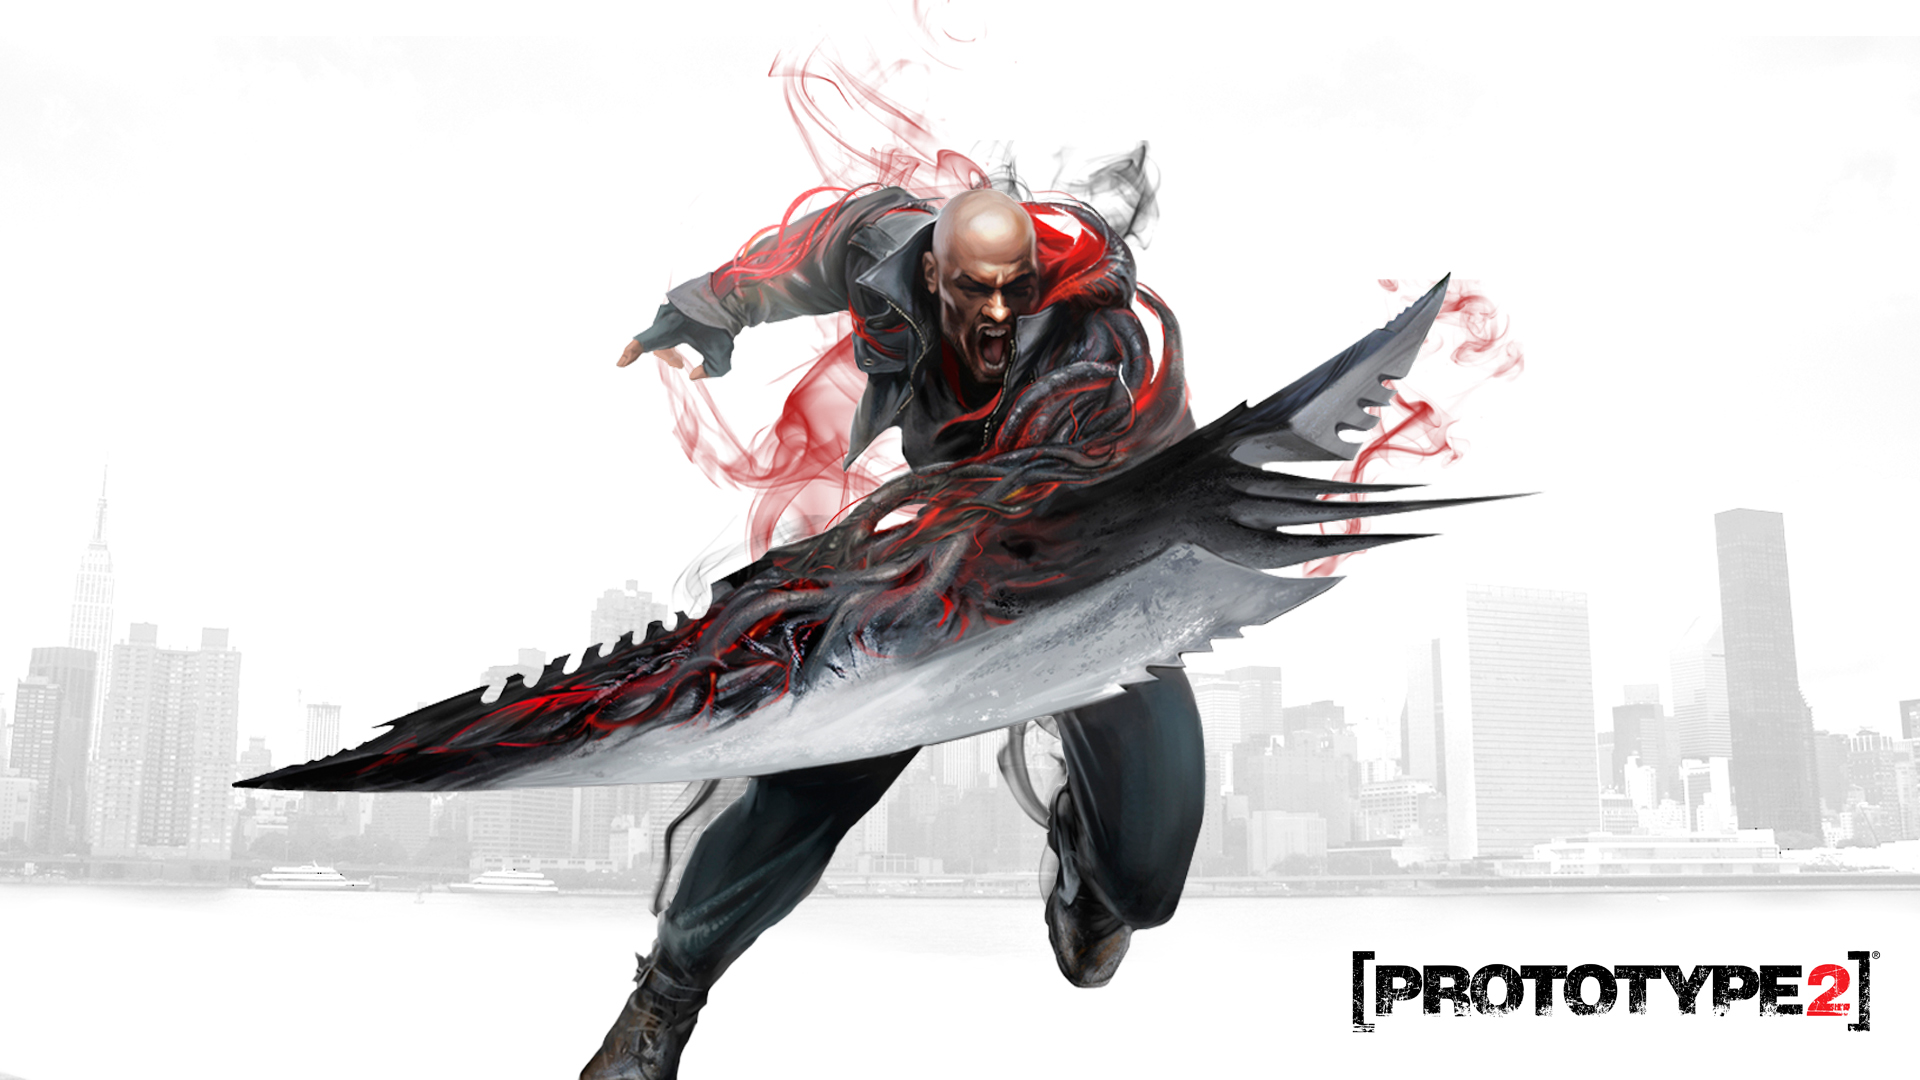 prototype 2 wallpaper by andynroses d4yts6sjpg 1920x1080